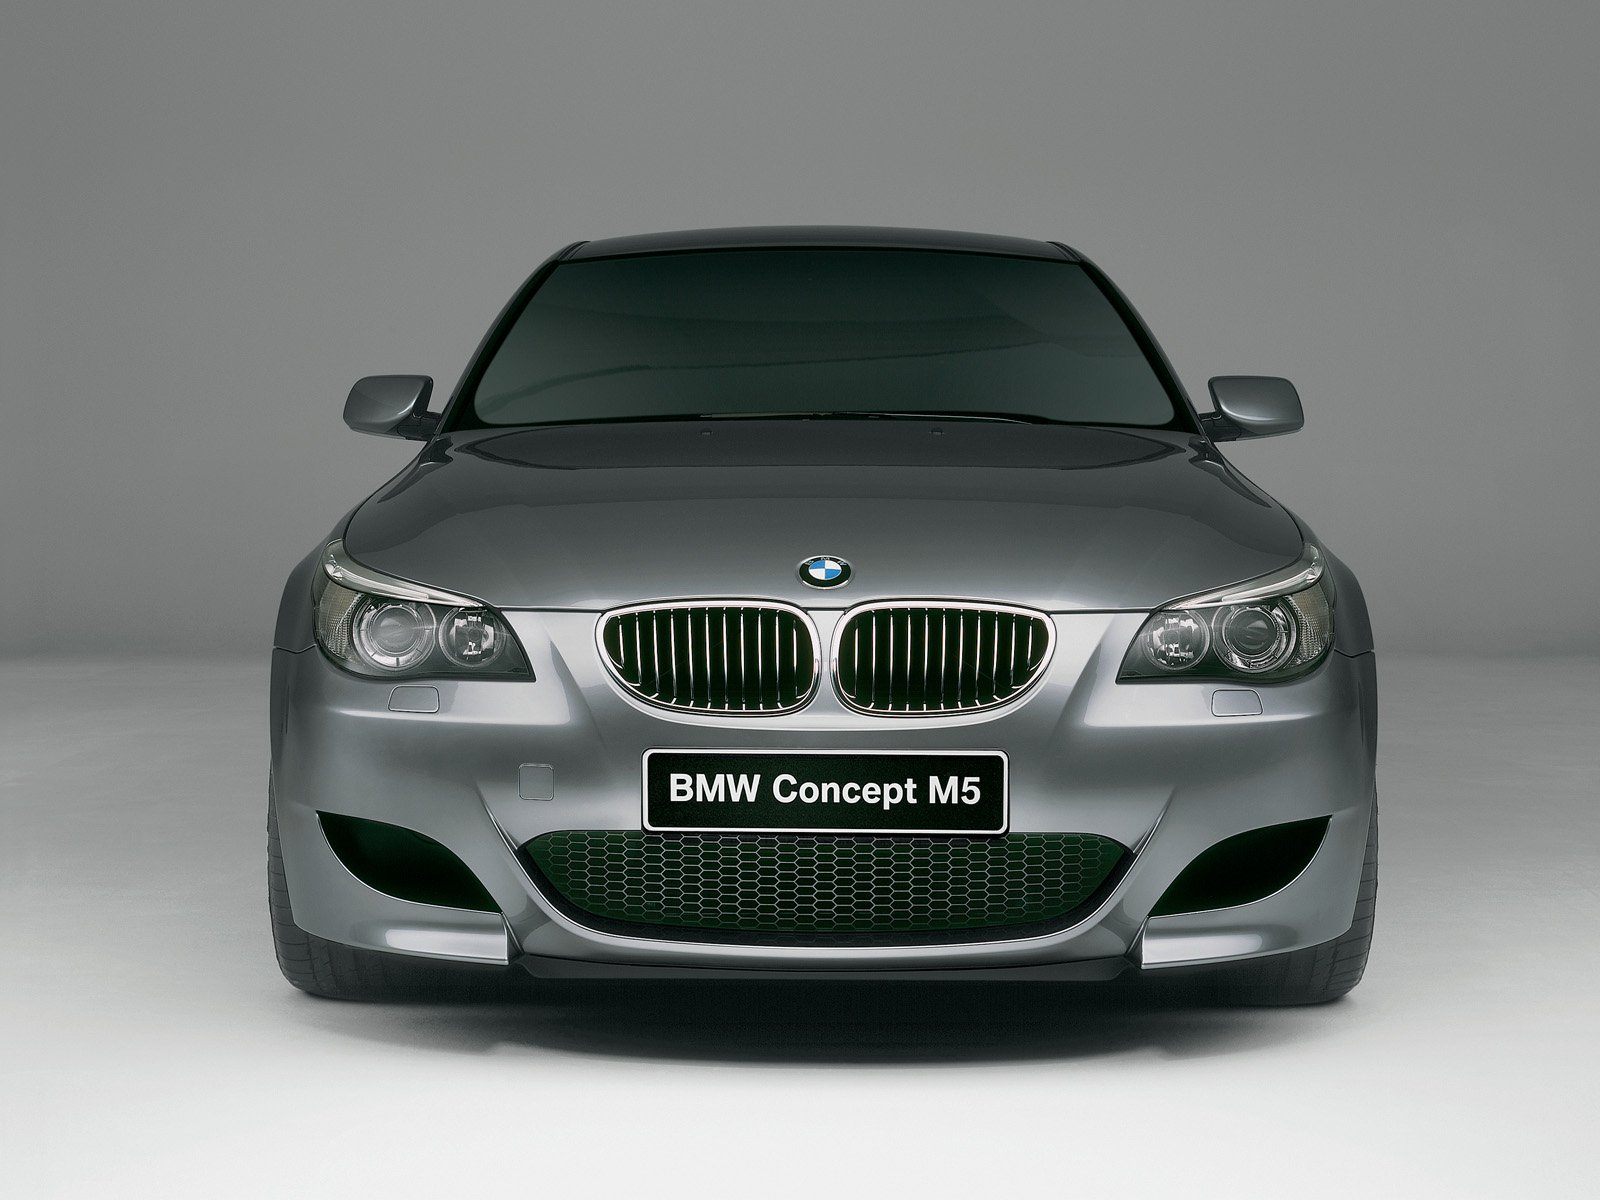 bmw m5 e60 picture 10068 bmw photo gallery. Black Bedroom Furniture Sets. Home Design Ideas